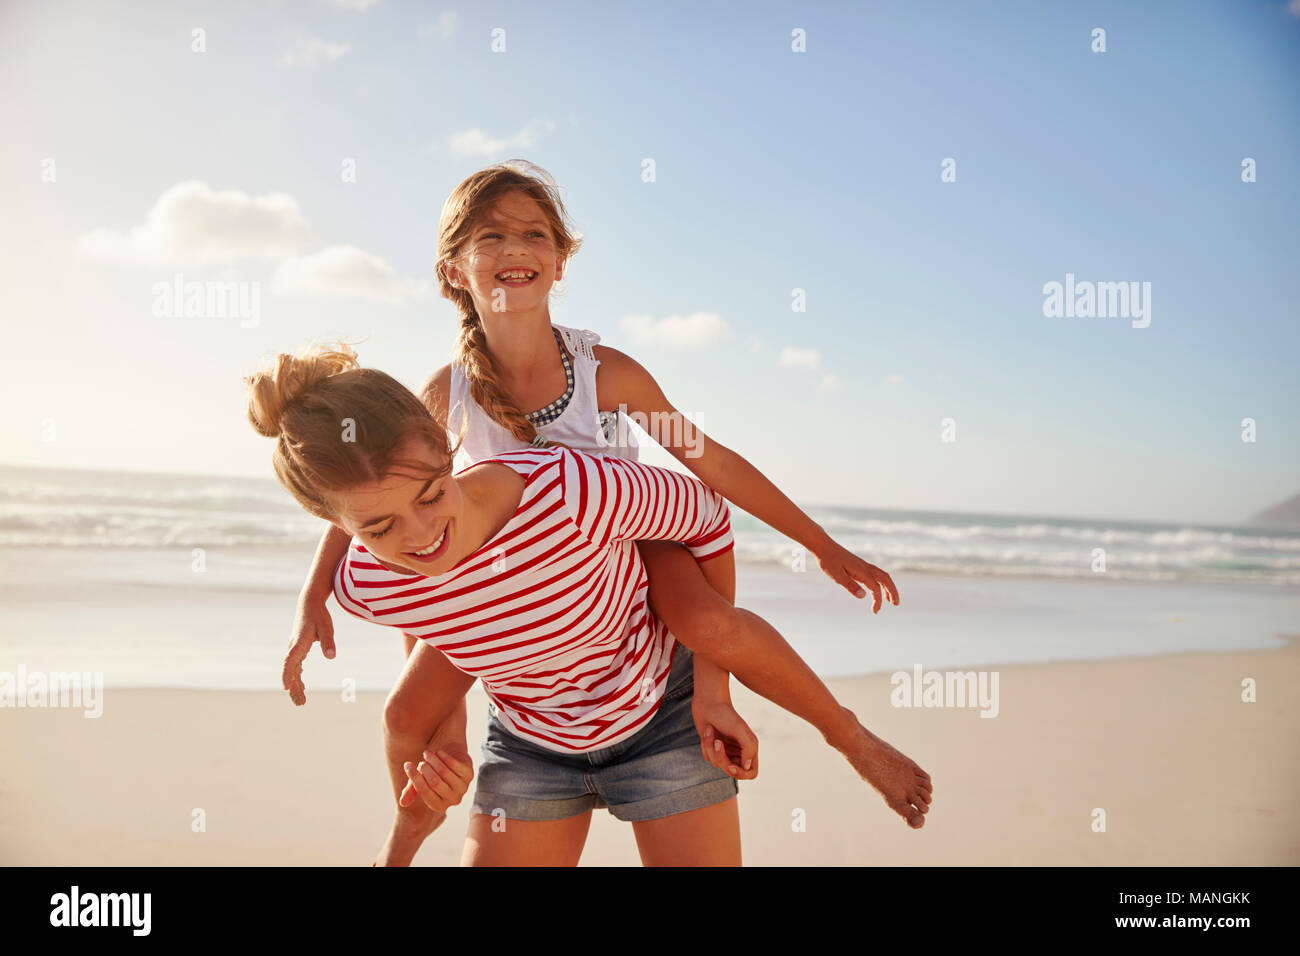 Mother Carrying Daughter On Shoulders On Beach Vacation - Stock Image